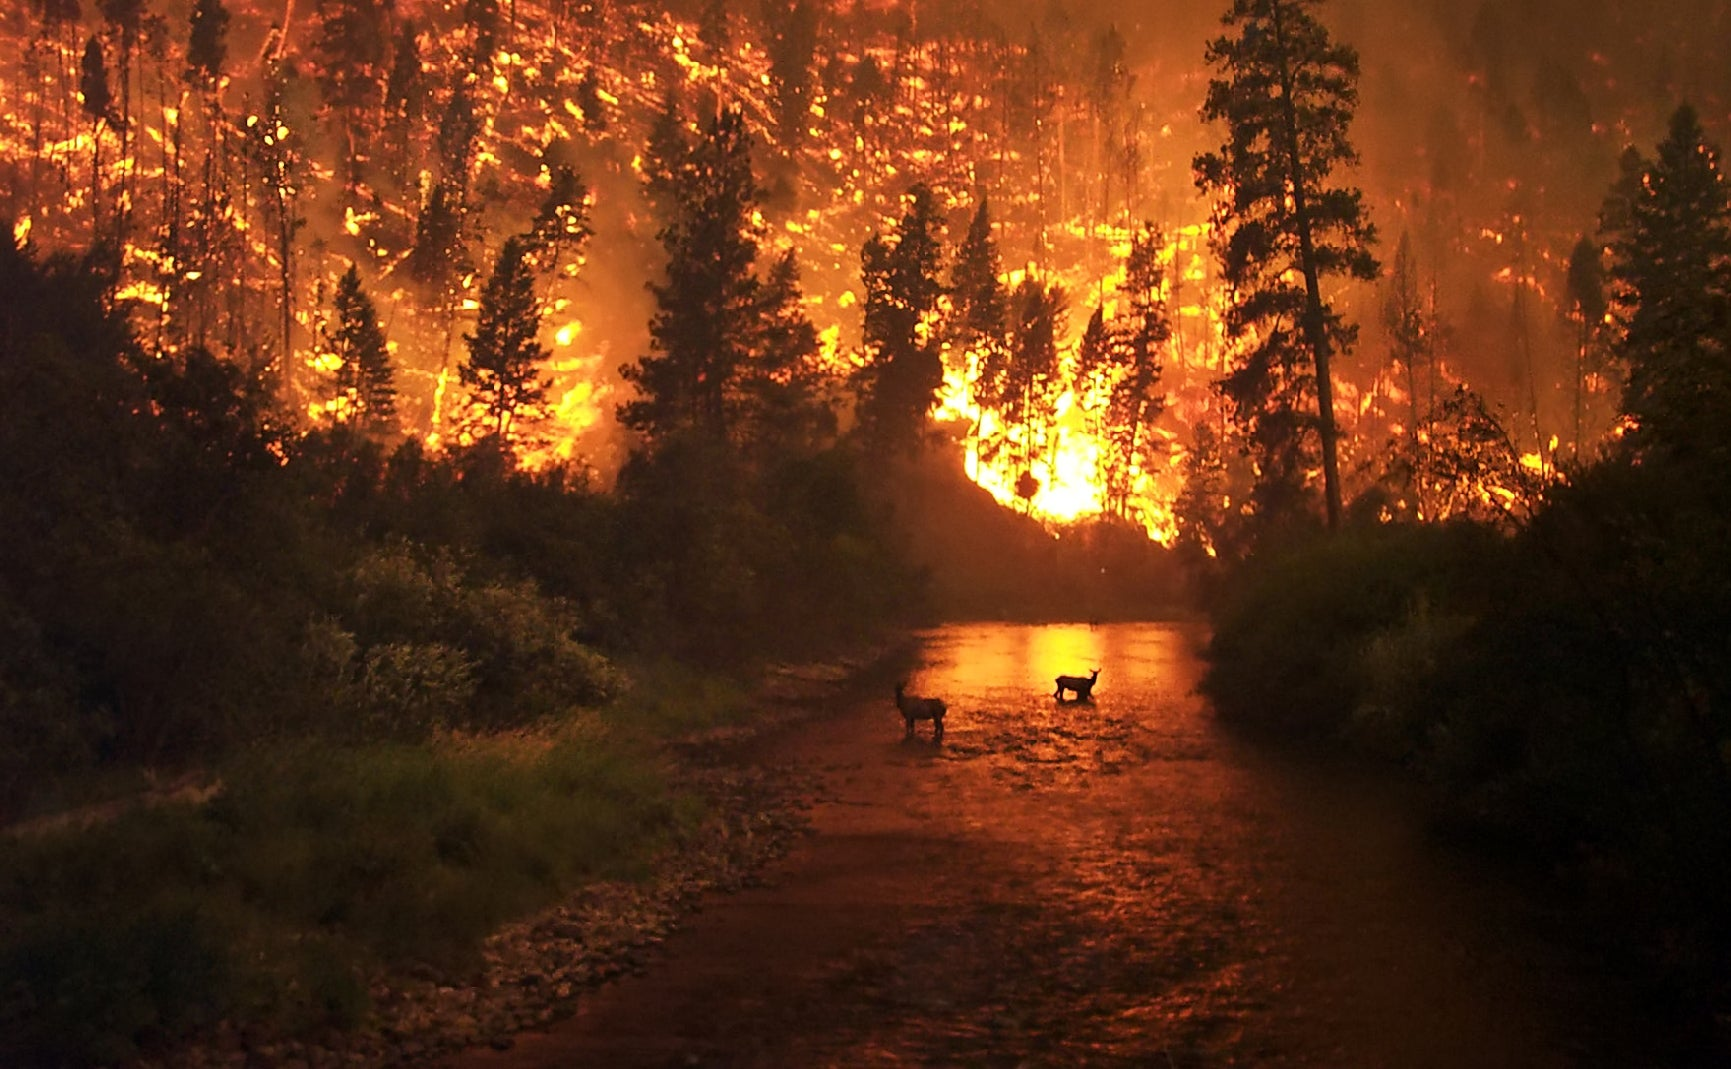 Survival Skills: How to Survive a Wildfire